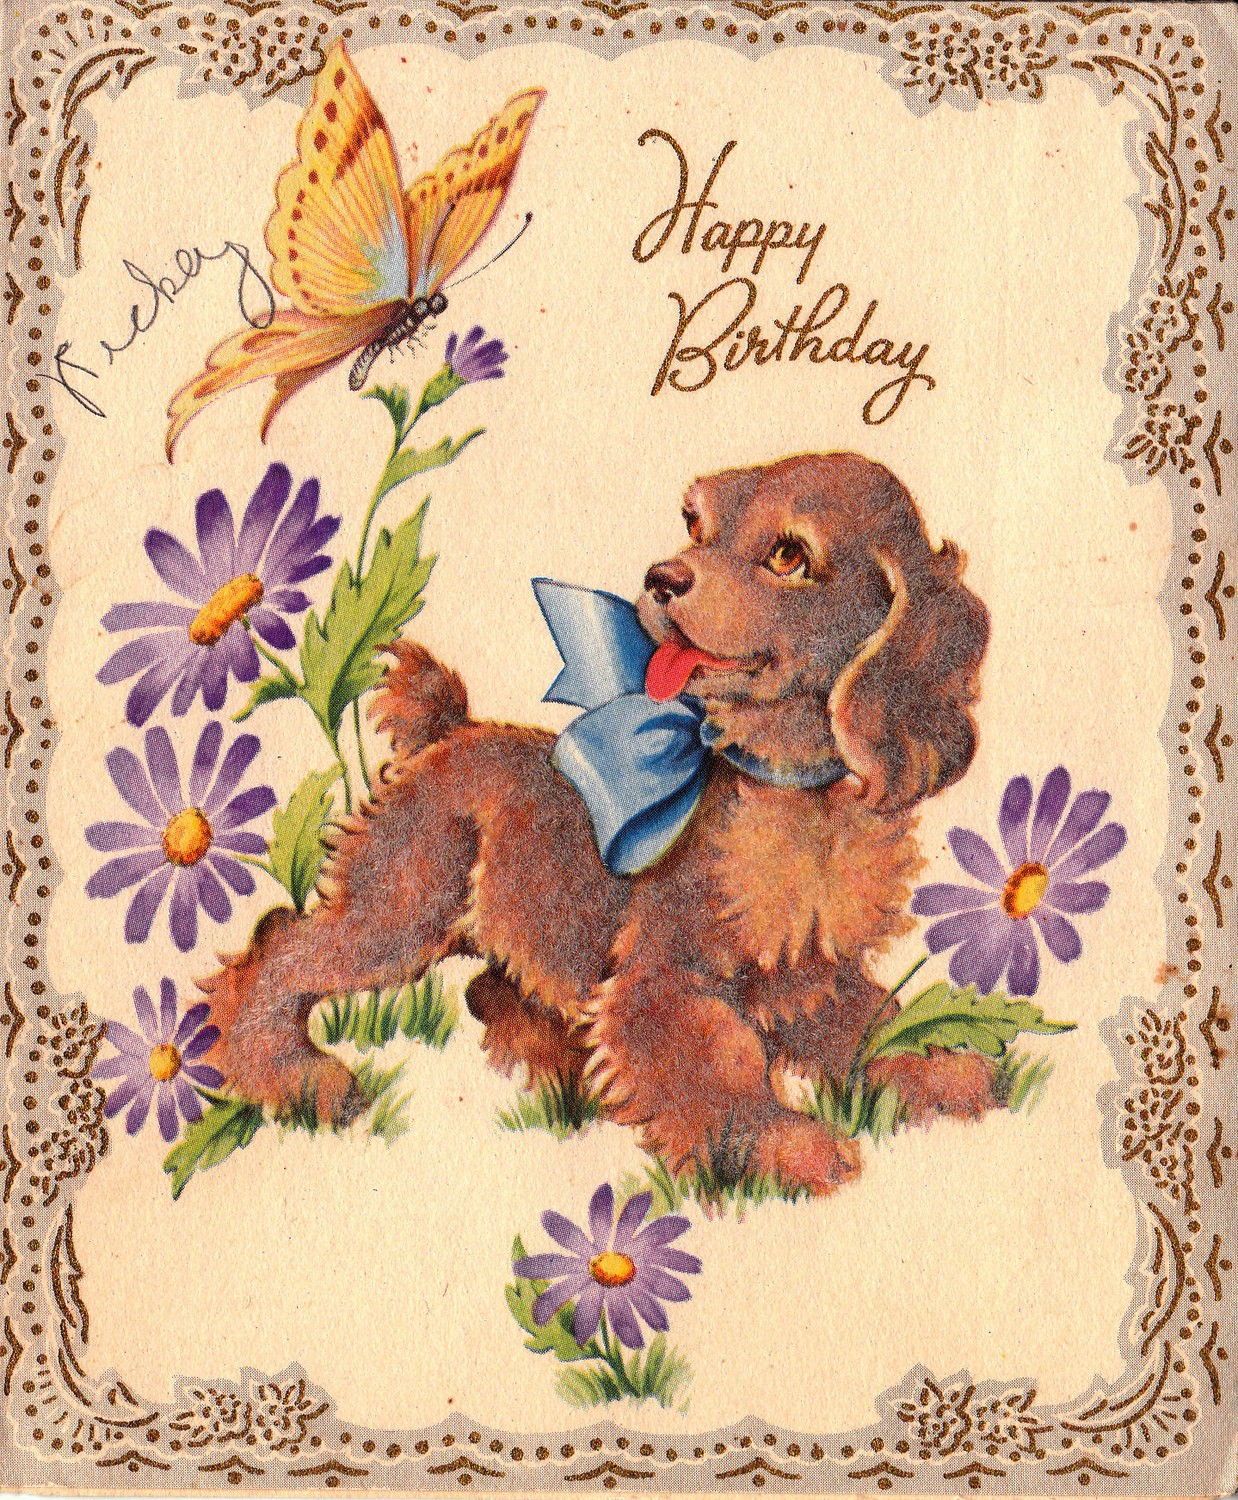 A free vintage happy birthday greeting with puppy